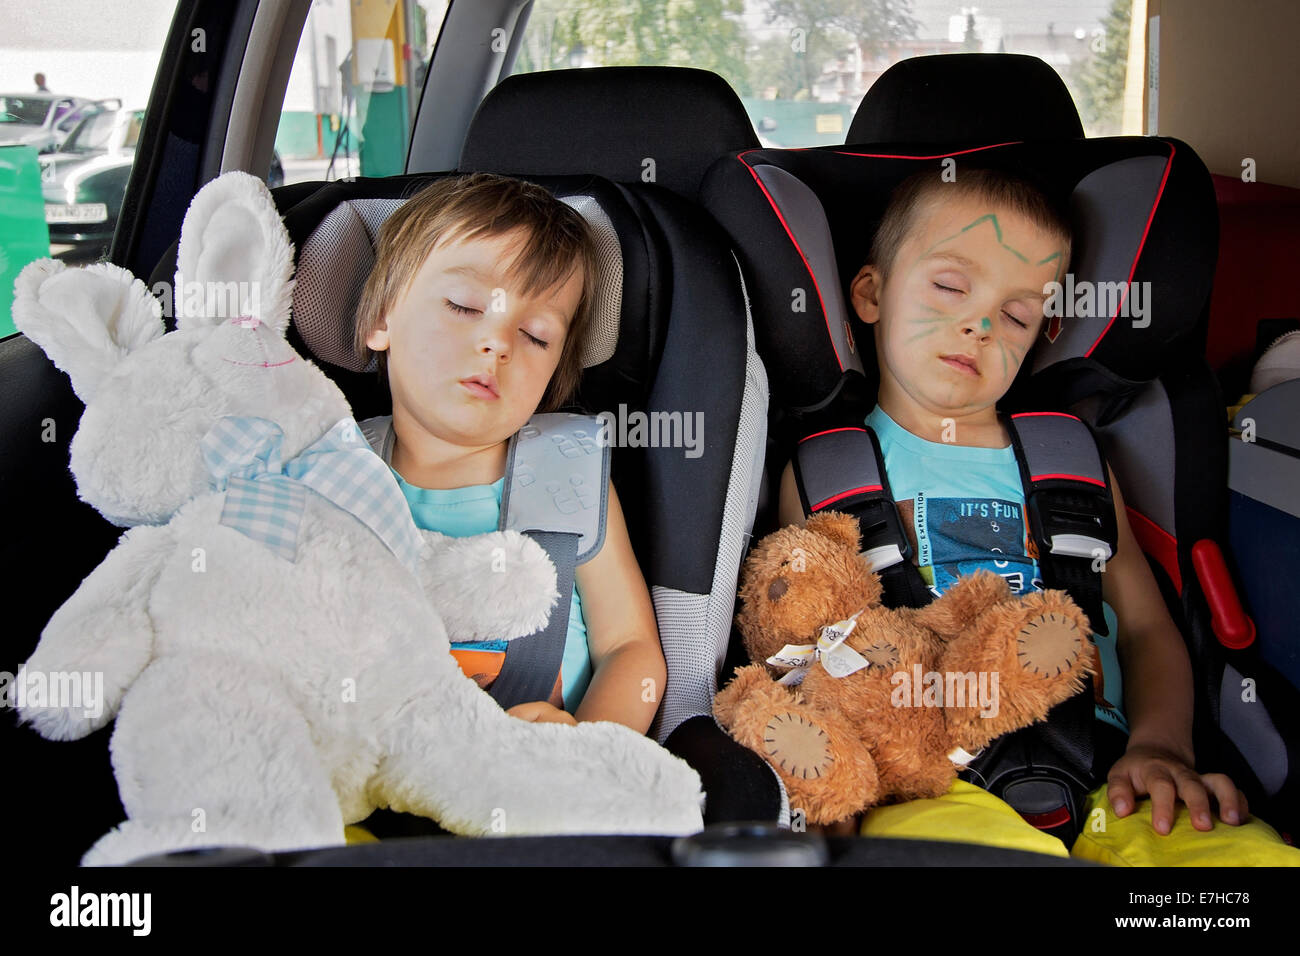 Two boys in car seats, traveling, sleeping in the car with teddy bears - Stock Image